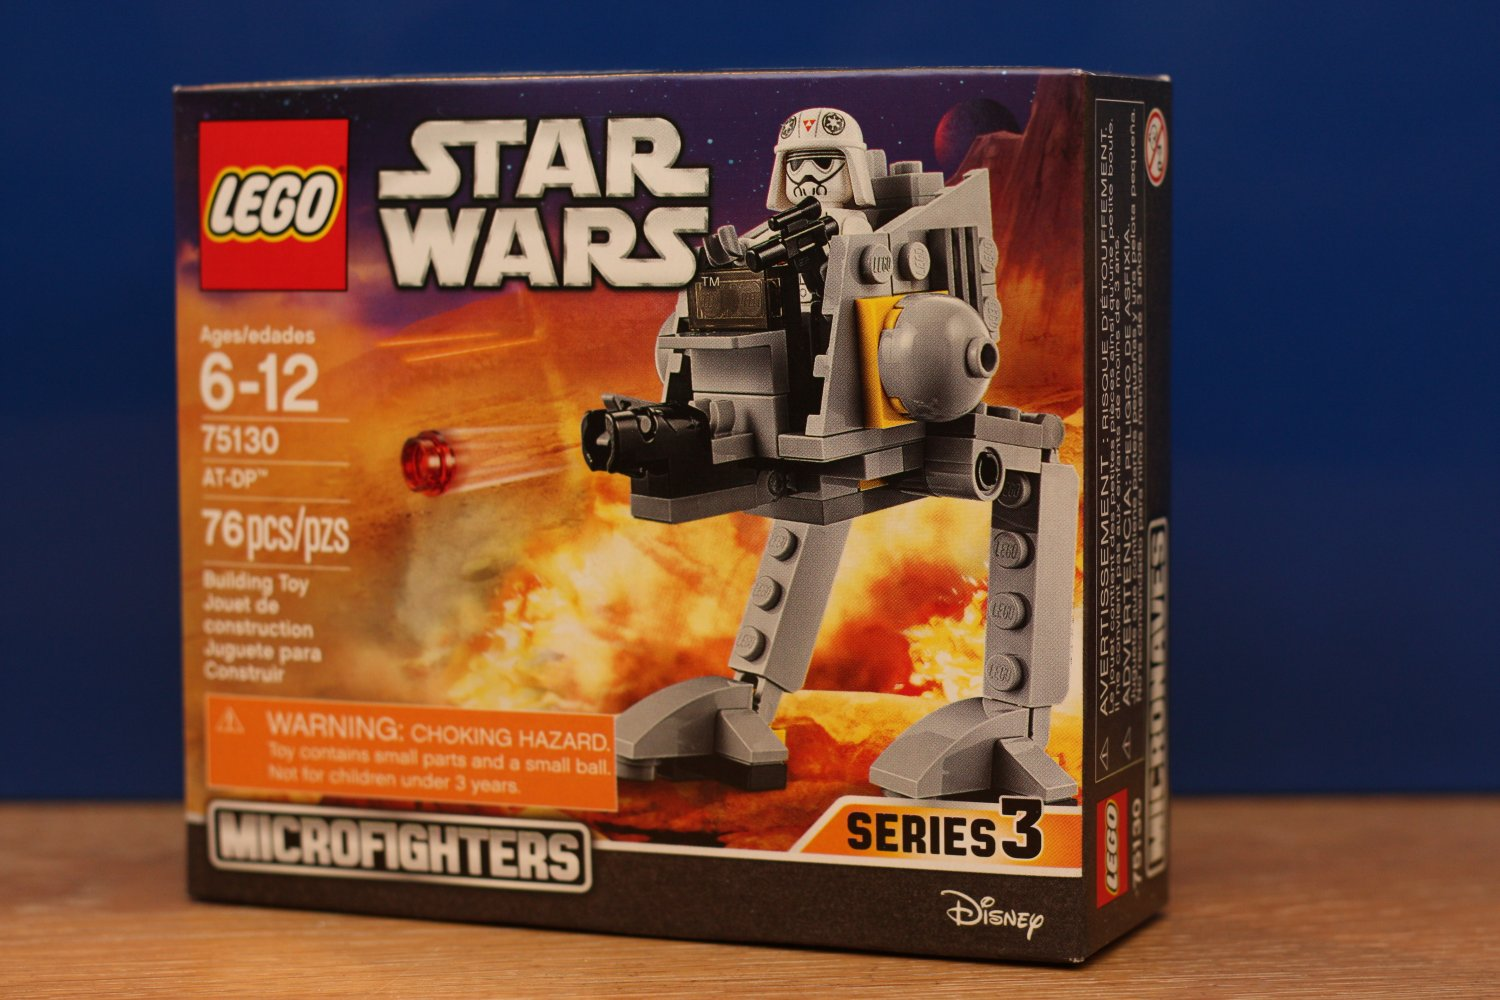 Lego Star Wars Microfighters Imperial AT-DP (75130)